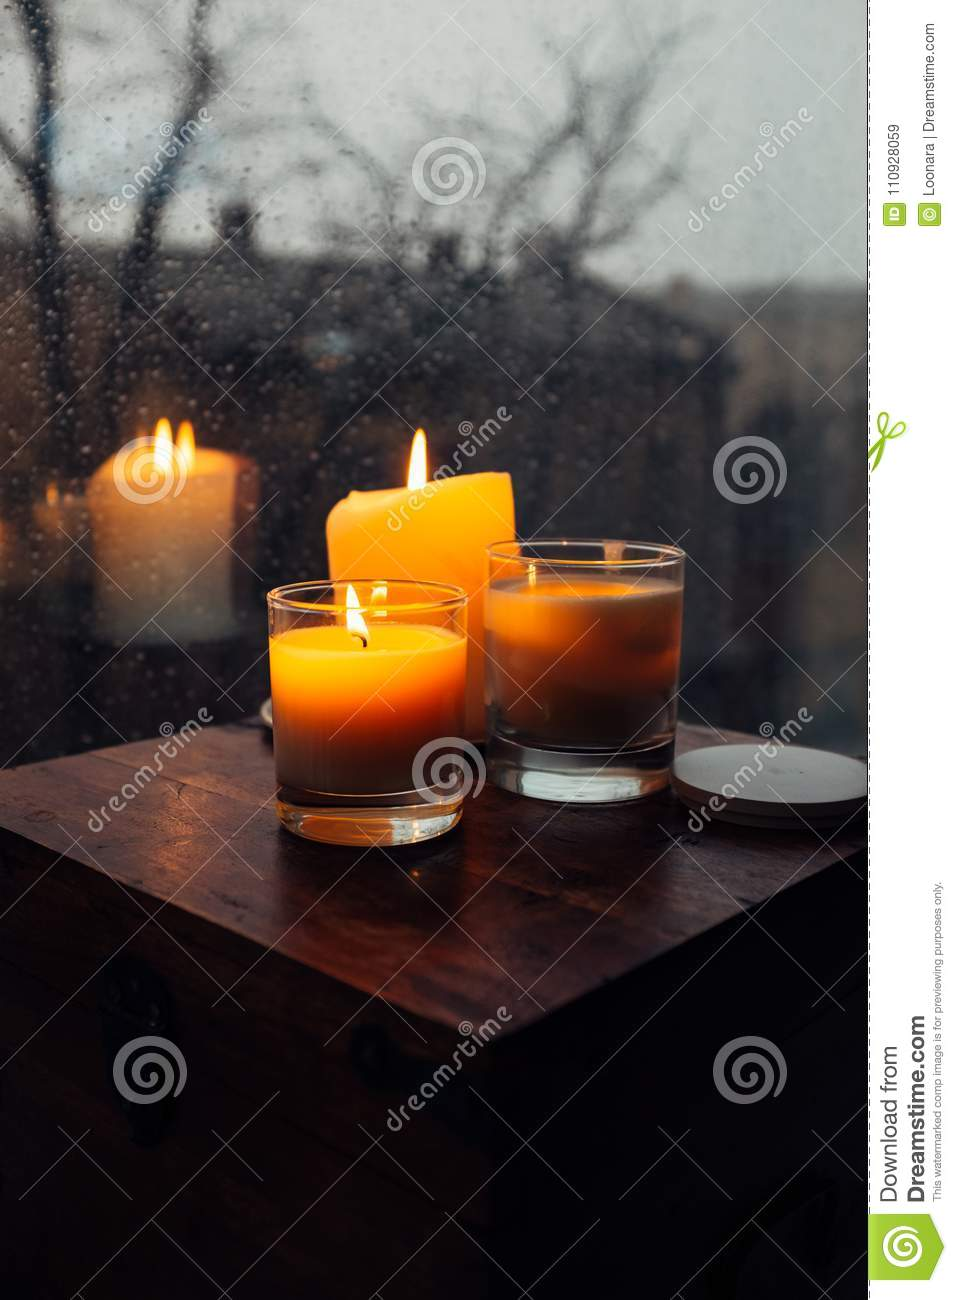 Three Burning Candles On Table, Cozy Rainy Day An Home Stock ... on riverside home, sunny day home, garden home, easter home, gloomy day home, cloudy day home, fun home, health home, black and white home, paul reubens home, cold home, blu home, farm home,